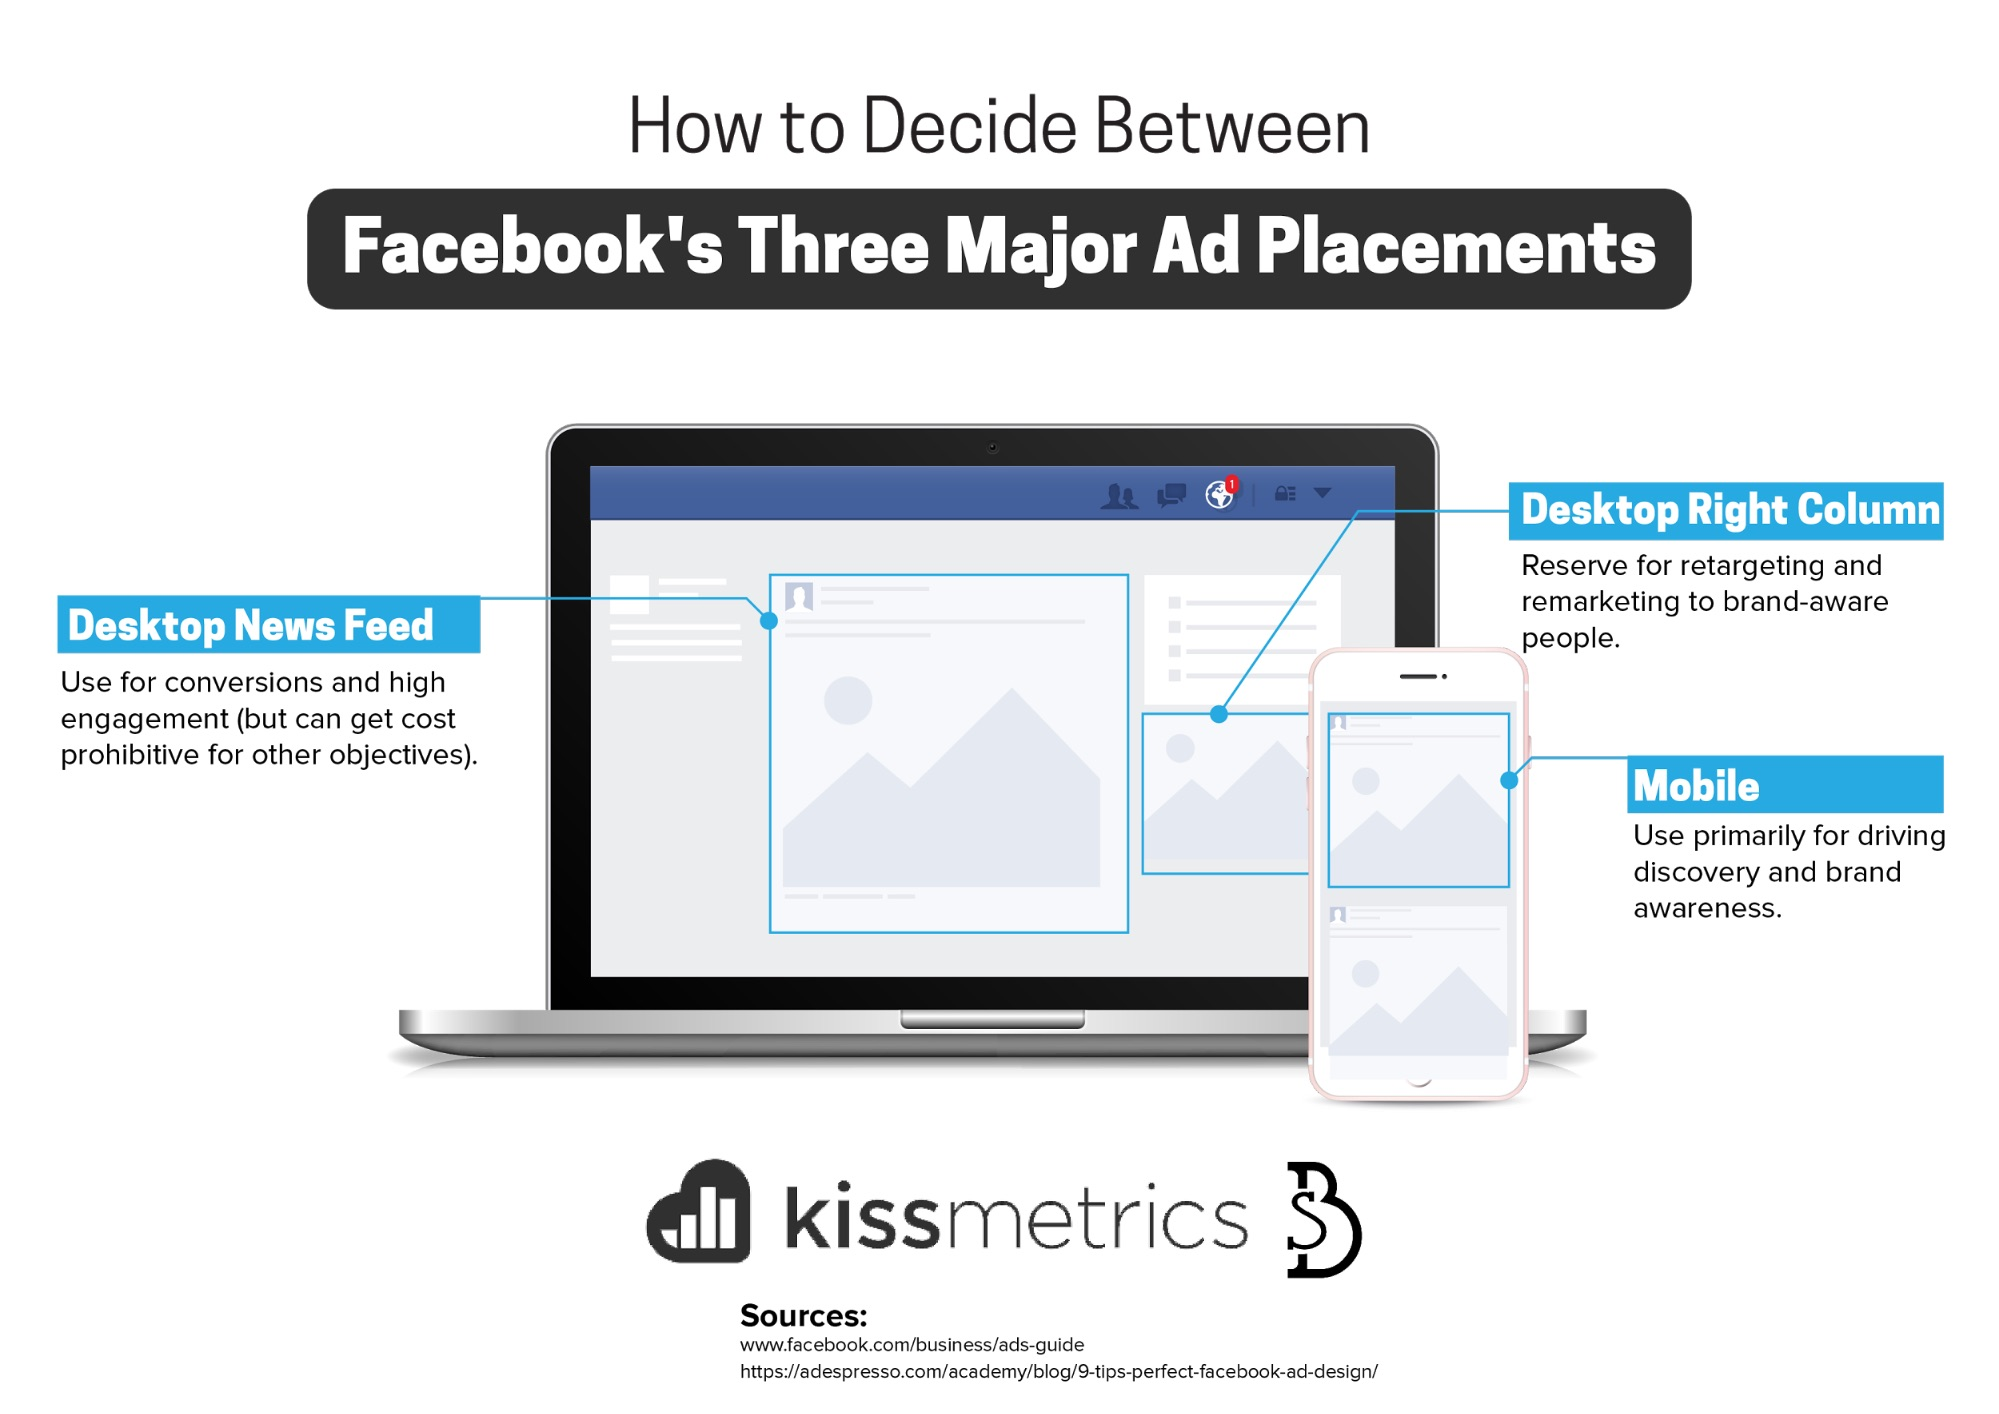 facebook's three major ad placements